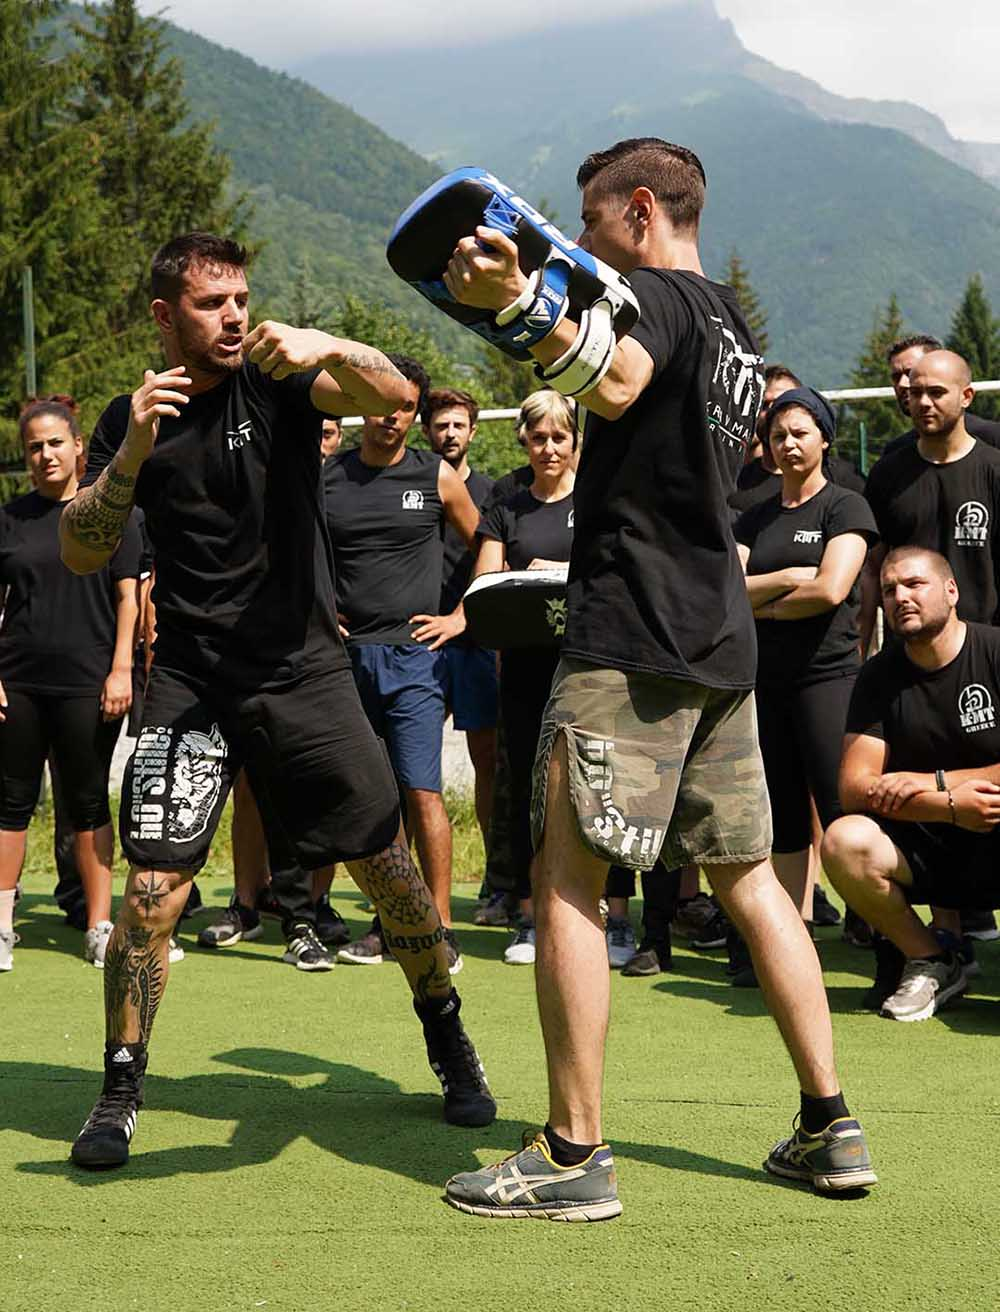 Krav Maga striking program for fighters